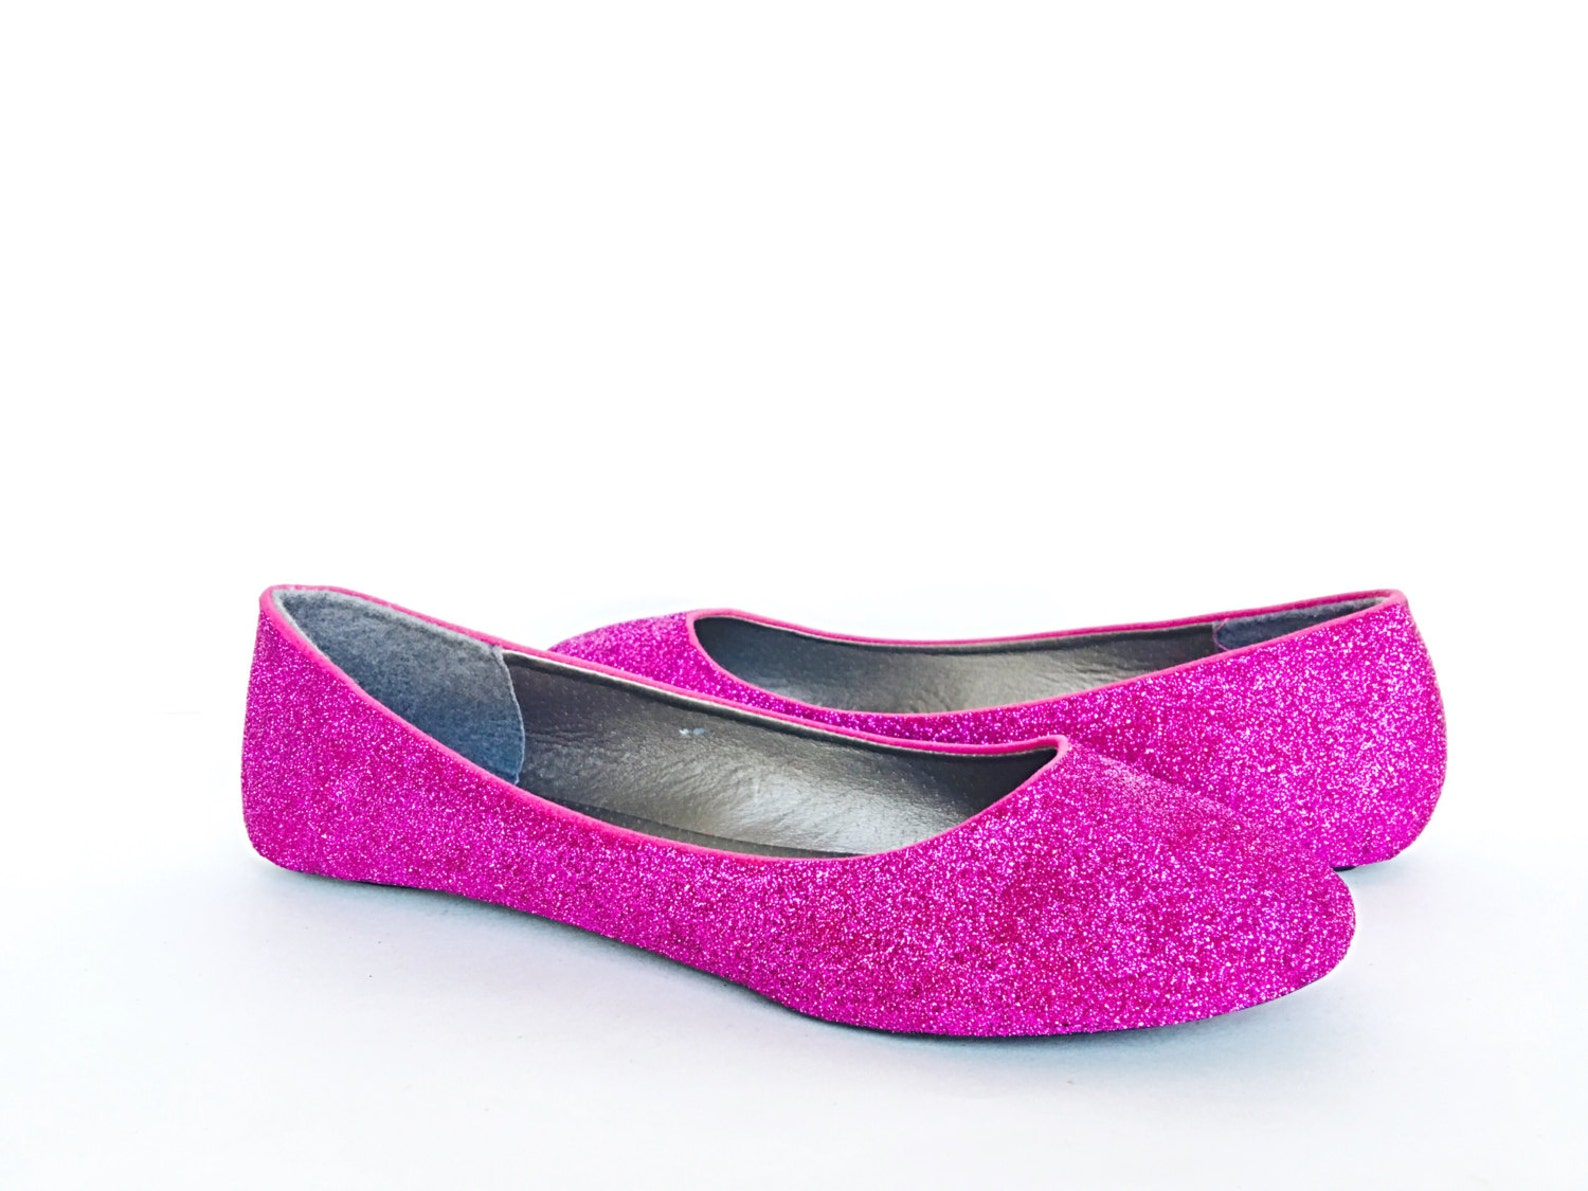 pink flats - glitter shoes - fuchsia ballet flats - sparkly wedding shoes - magenta prom shoes - hot pink glitzy flats - glitter